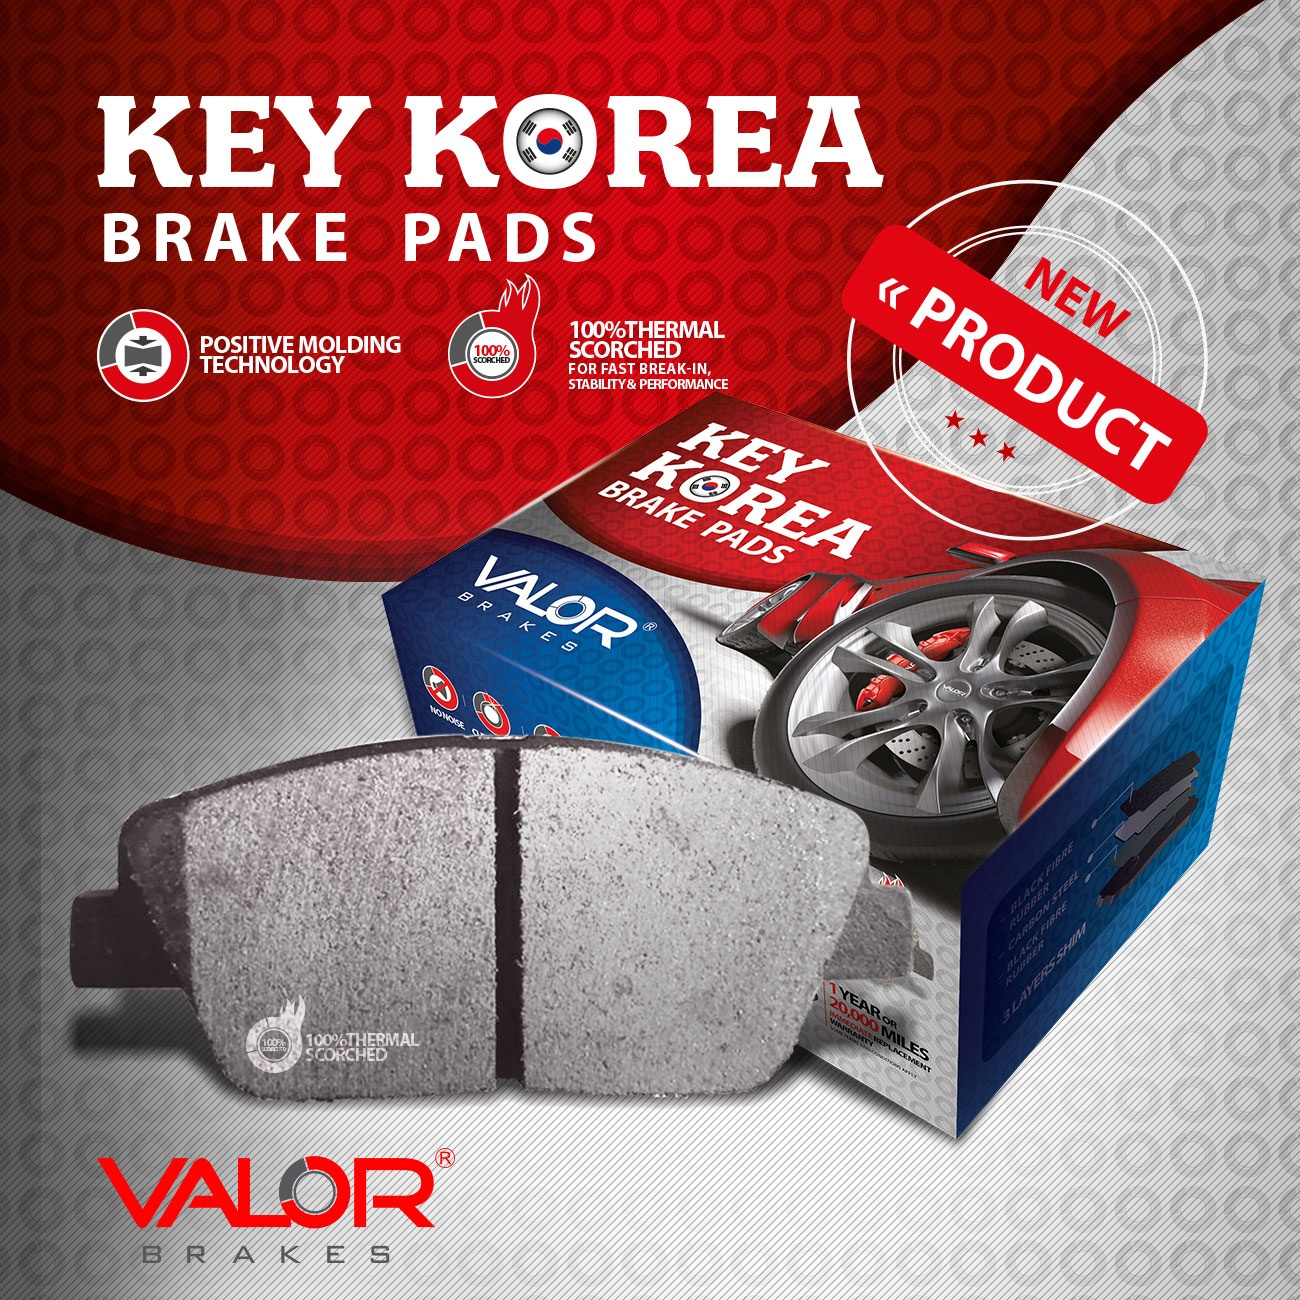 valor brake pad for Korean cars